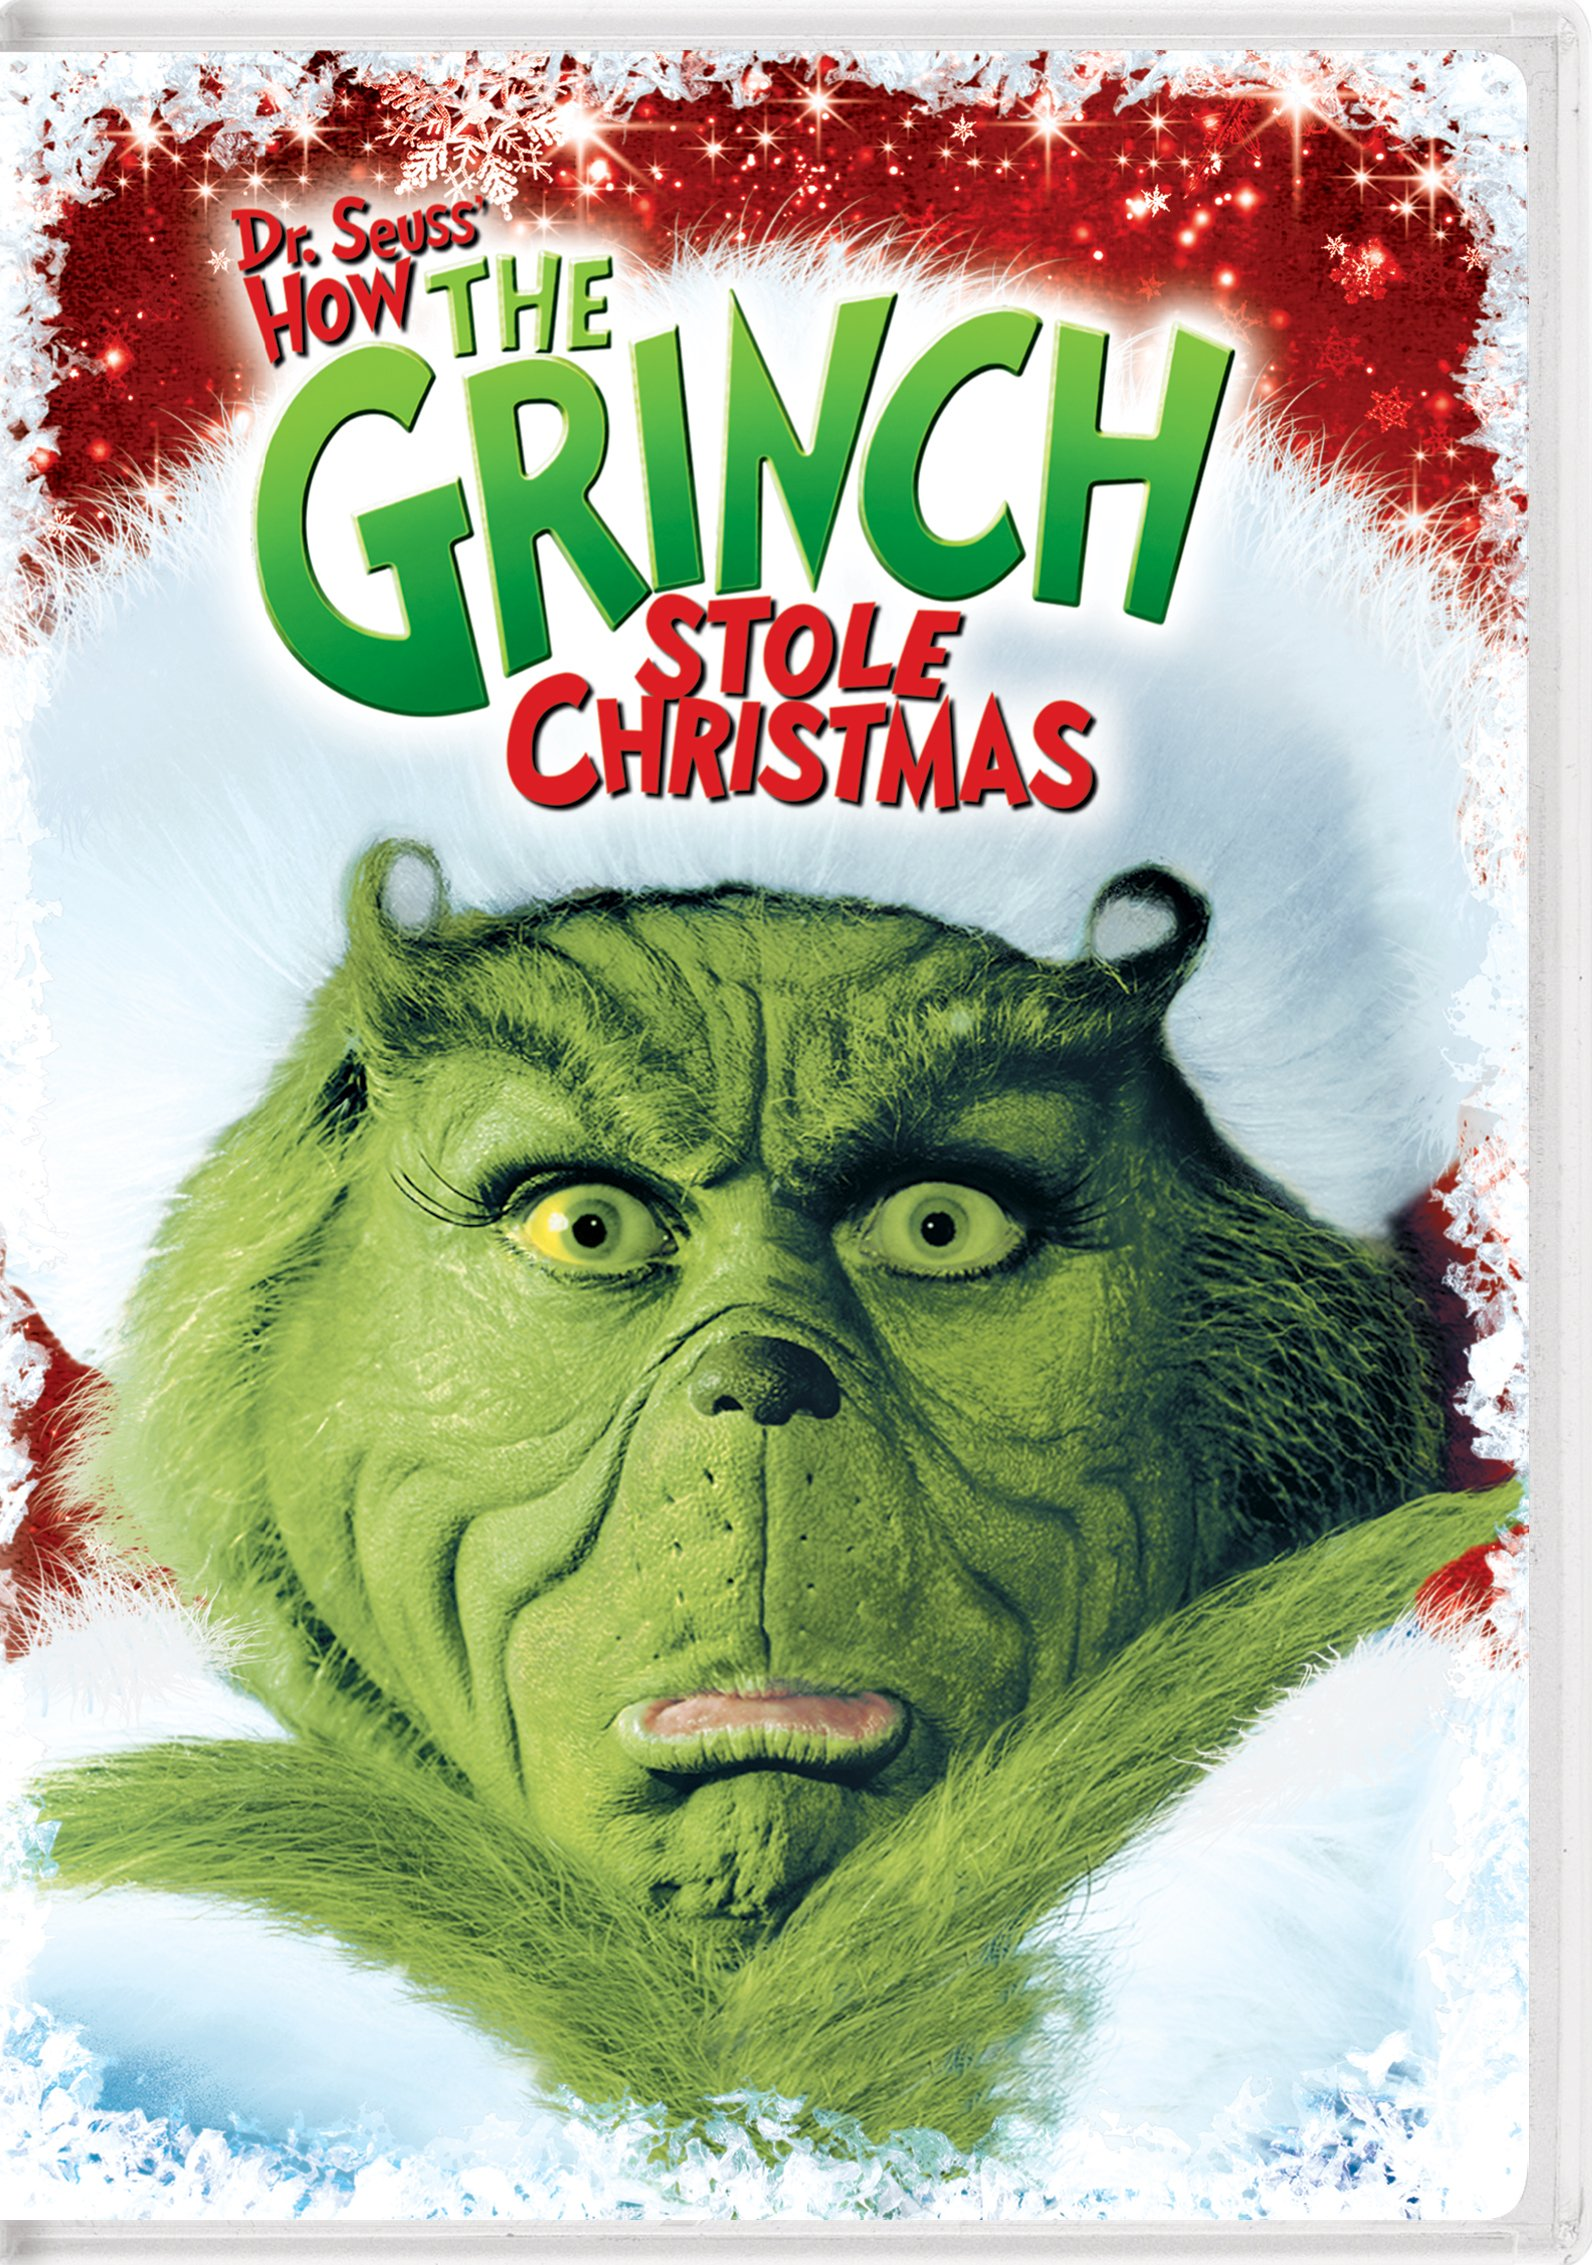 DVD : Dr. Seuss' How The Grinch Stole Christmas (Snap Case)